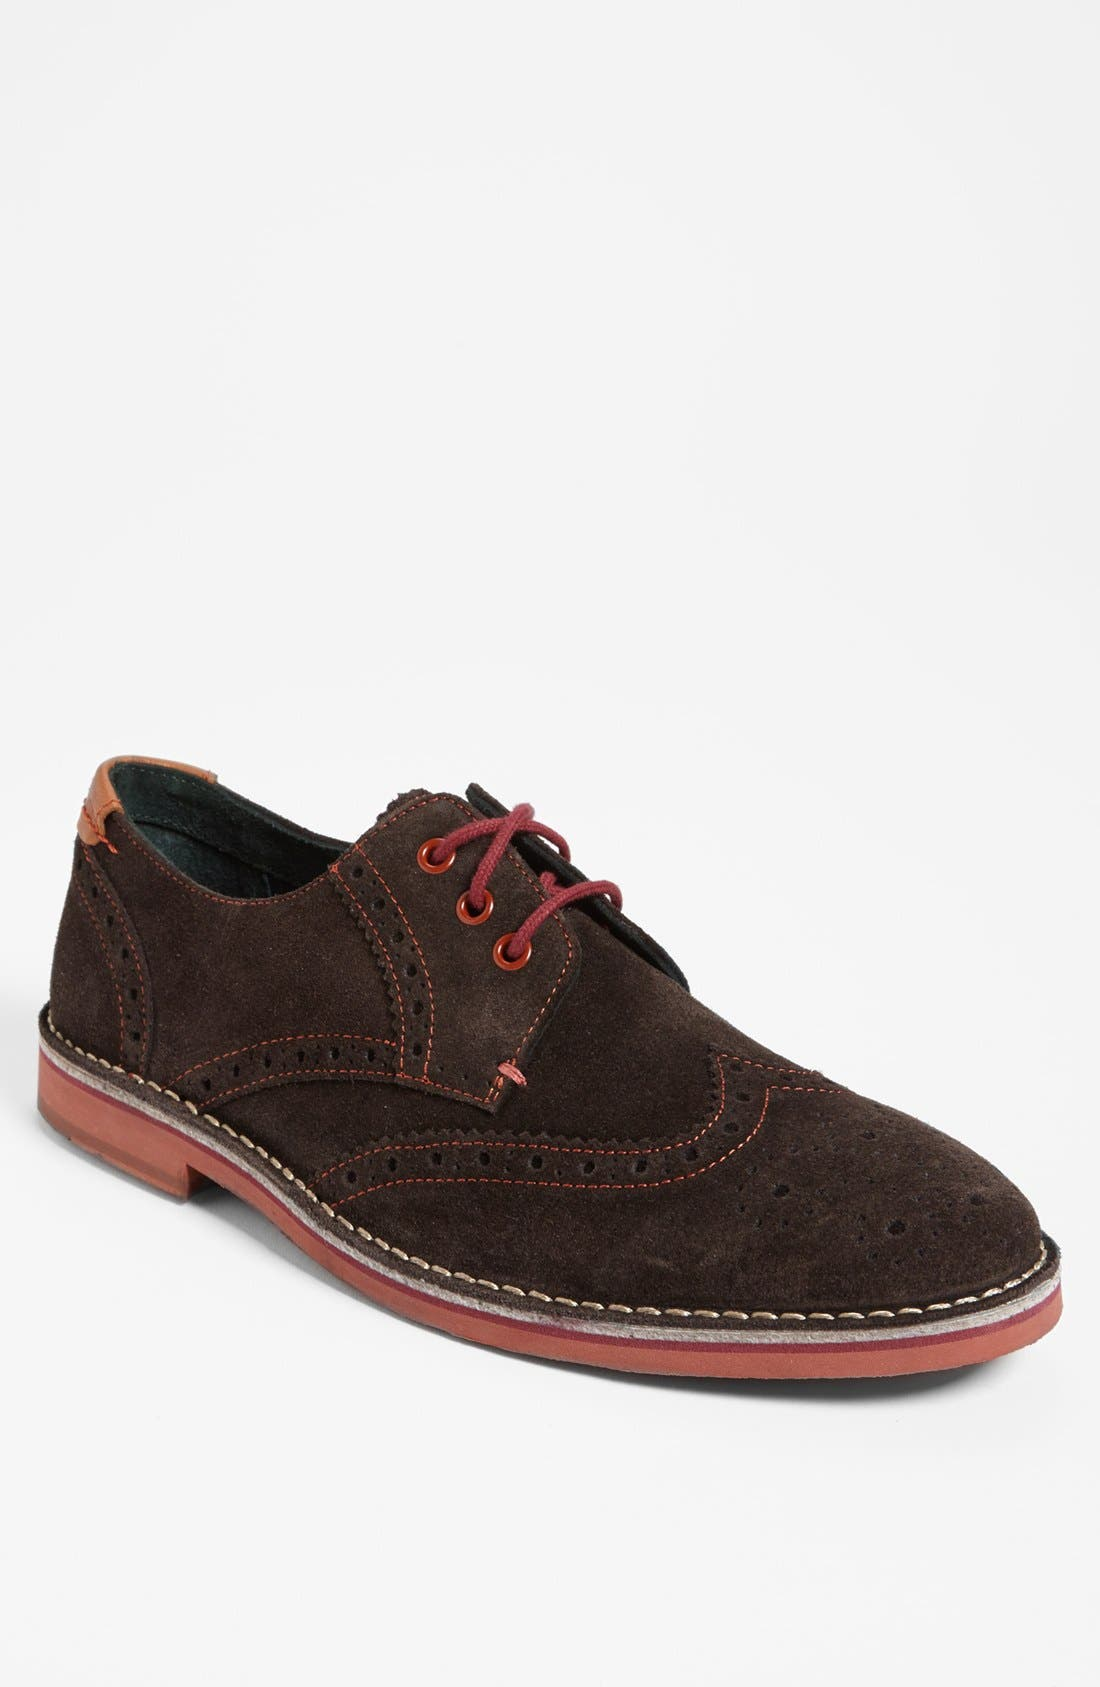 Alternate Image 1 Selected - Ted Baker London 'Jamfro2' Wingtip